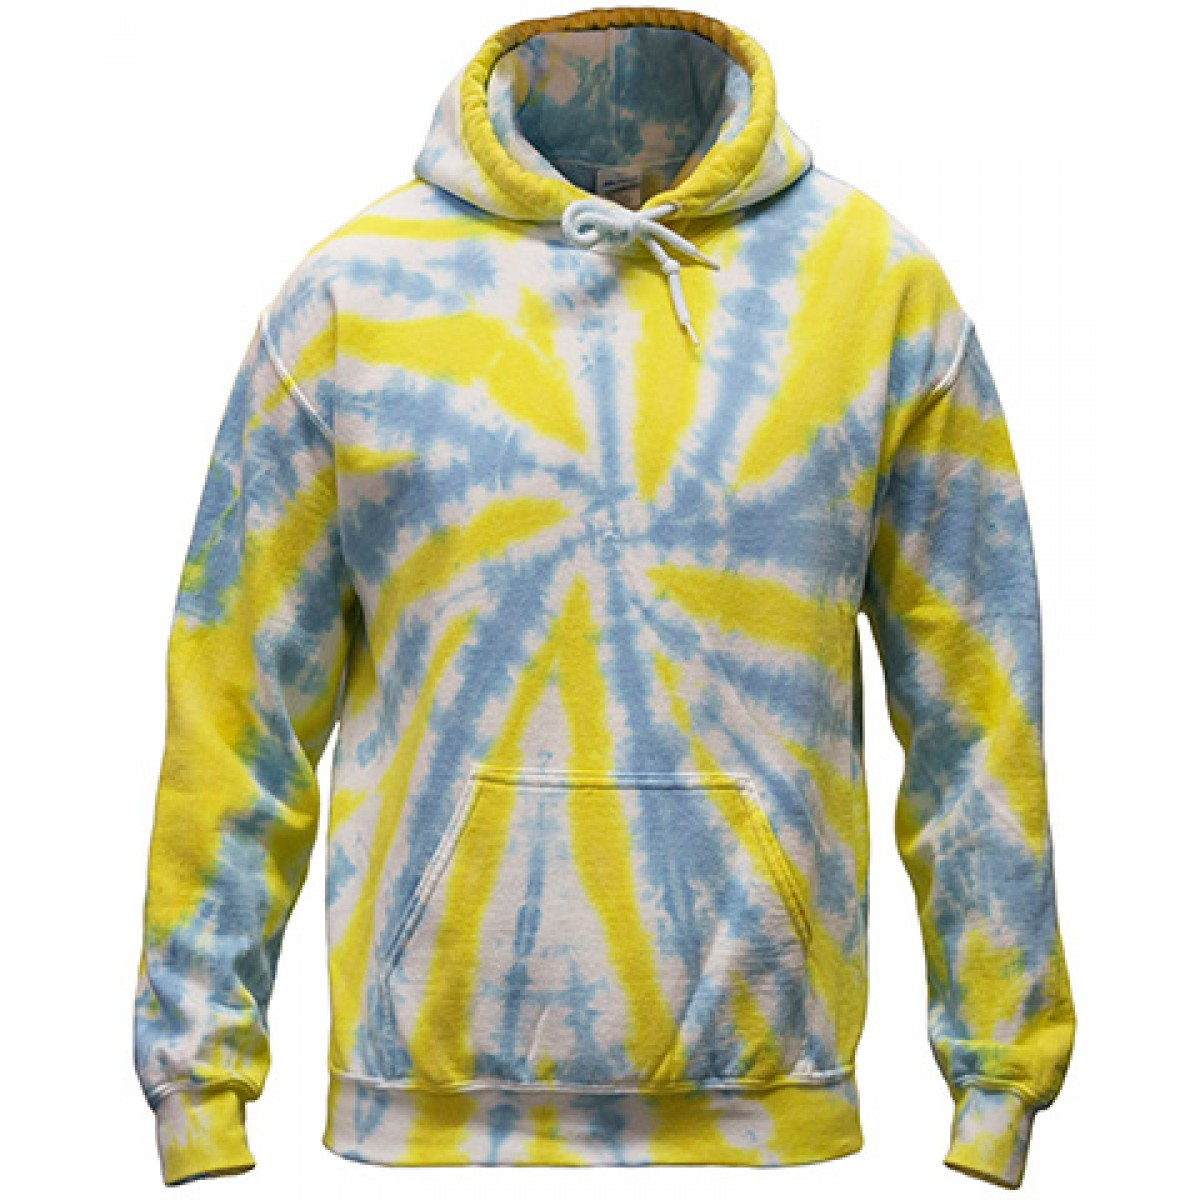 Tie-Dye Pullover Hooded Sweatshirt-Blue/Yellow-2XL